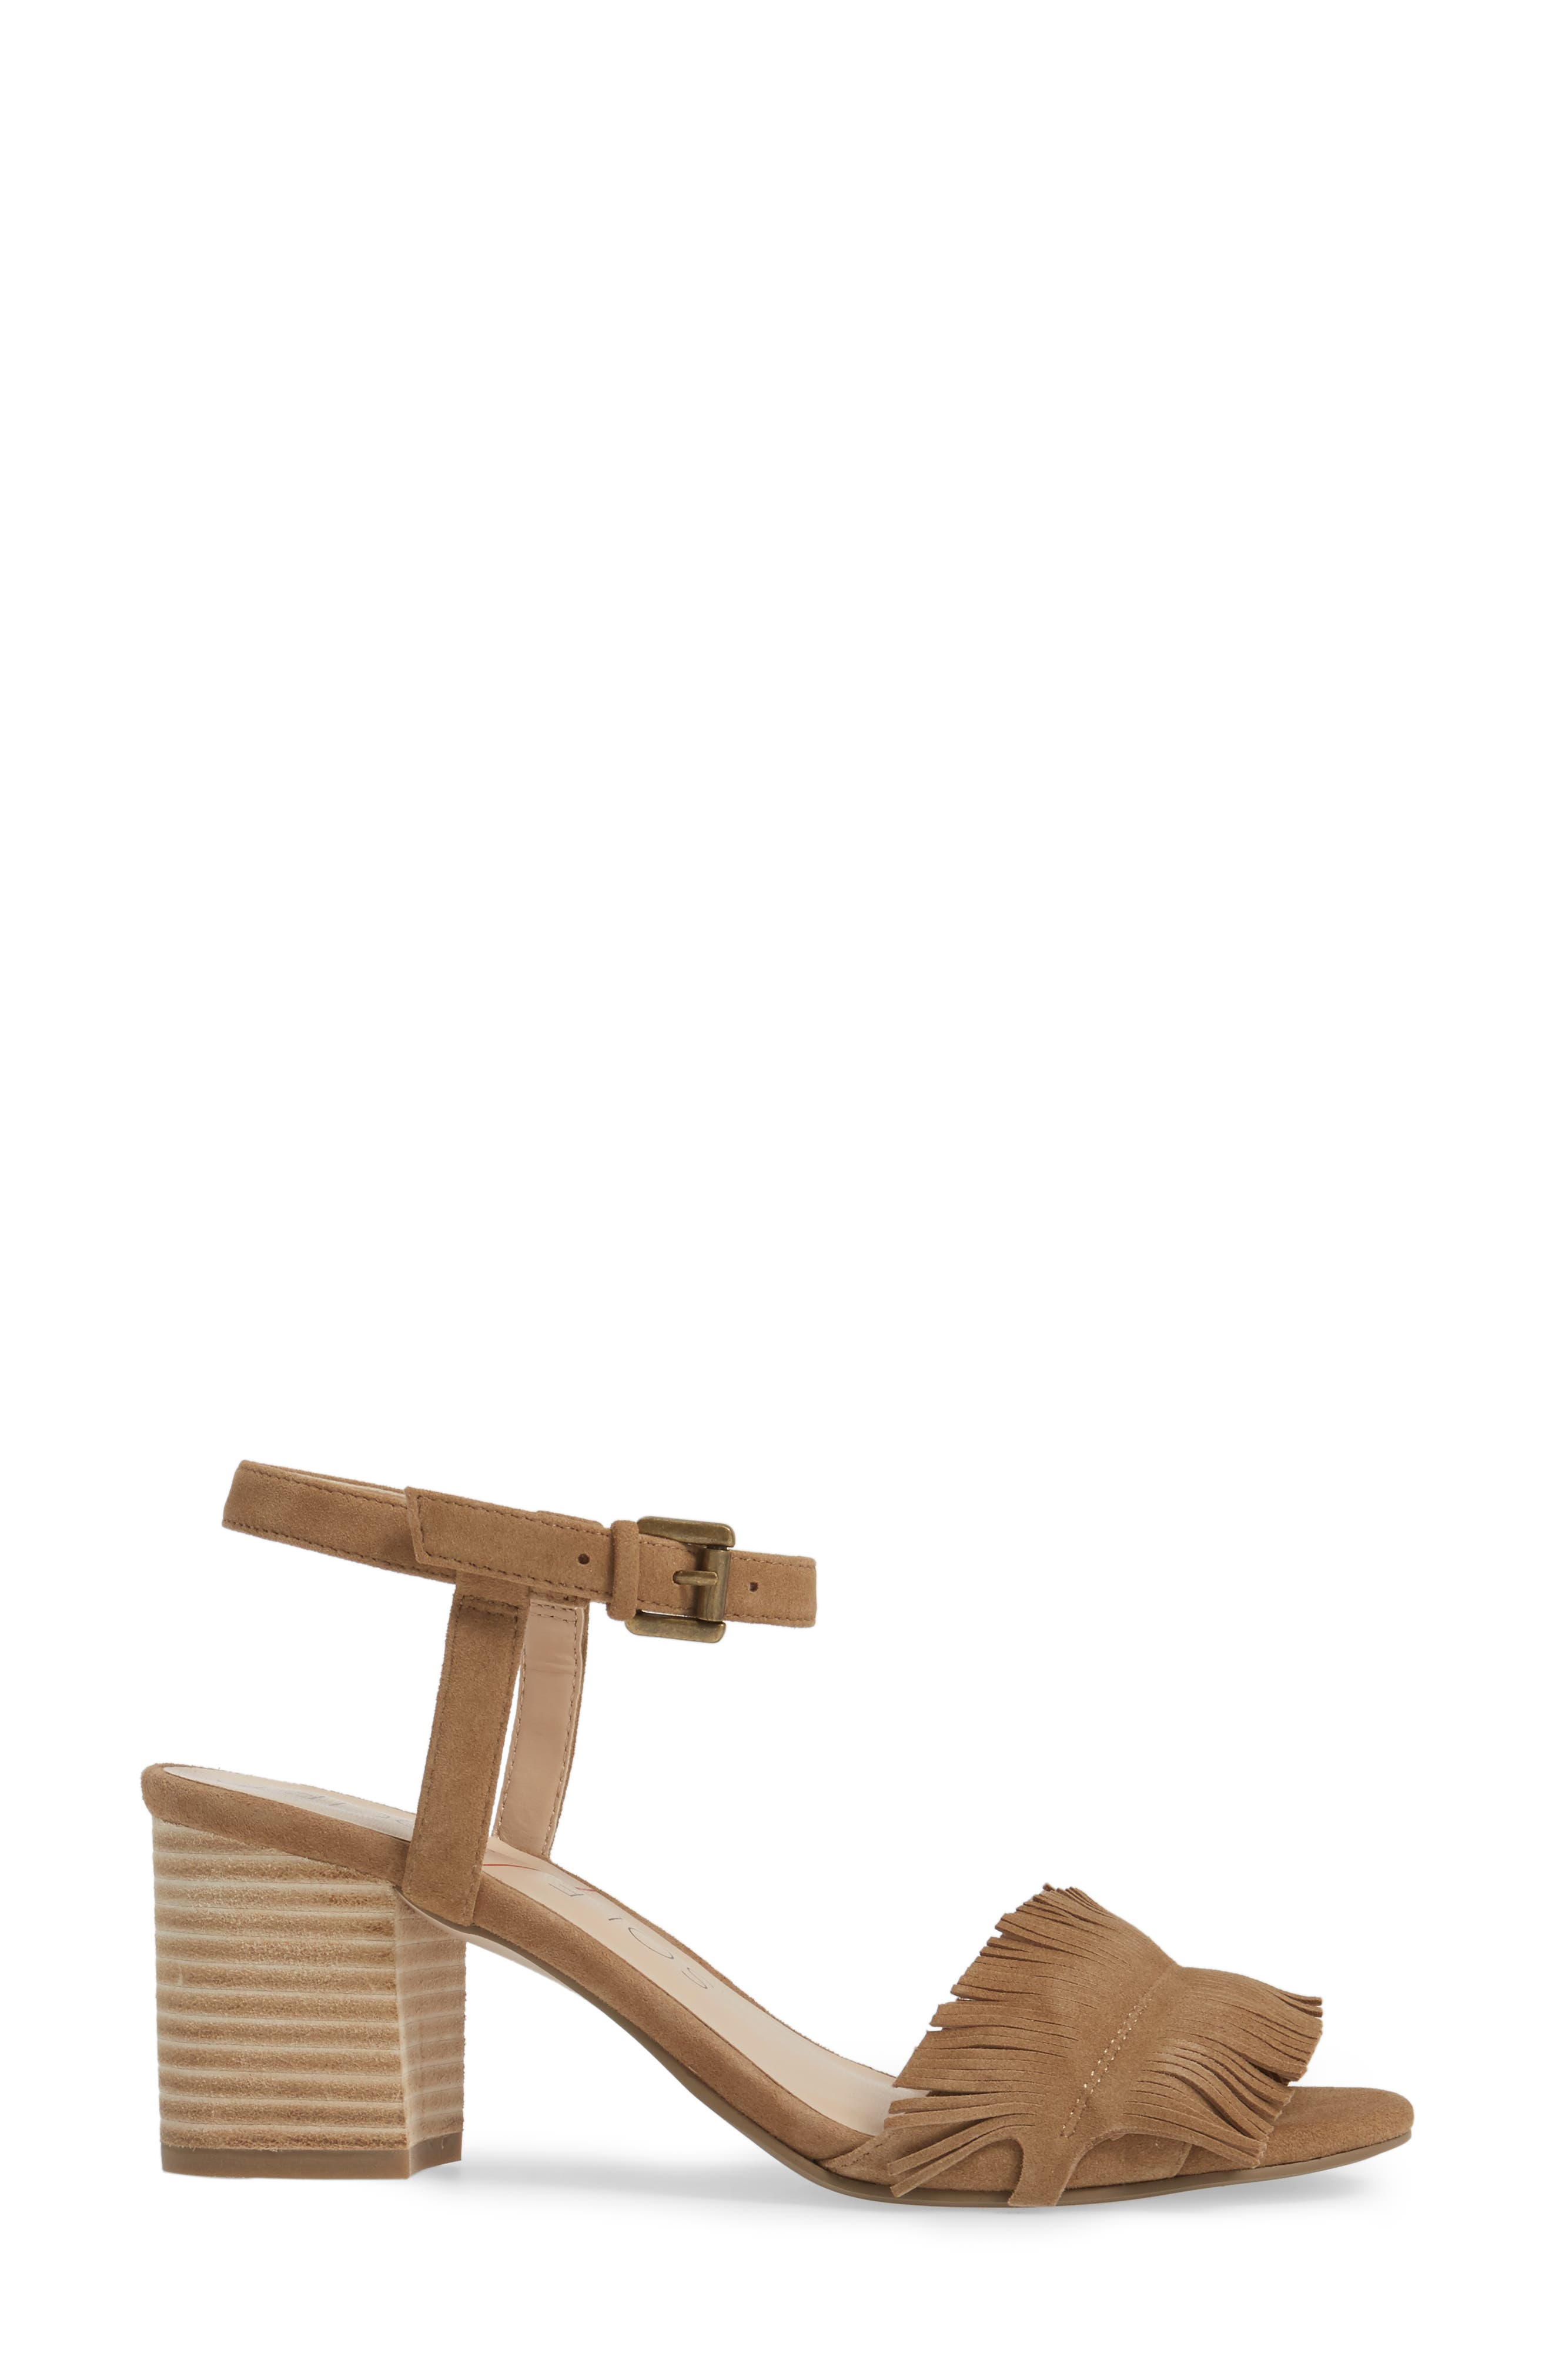 Sepia Fringe Sandal,                             Alternate thumbnail 3, color,                             246